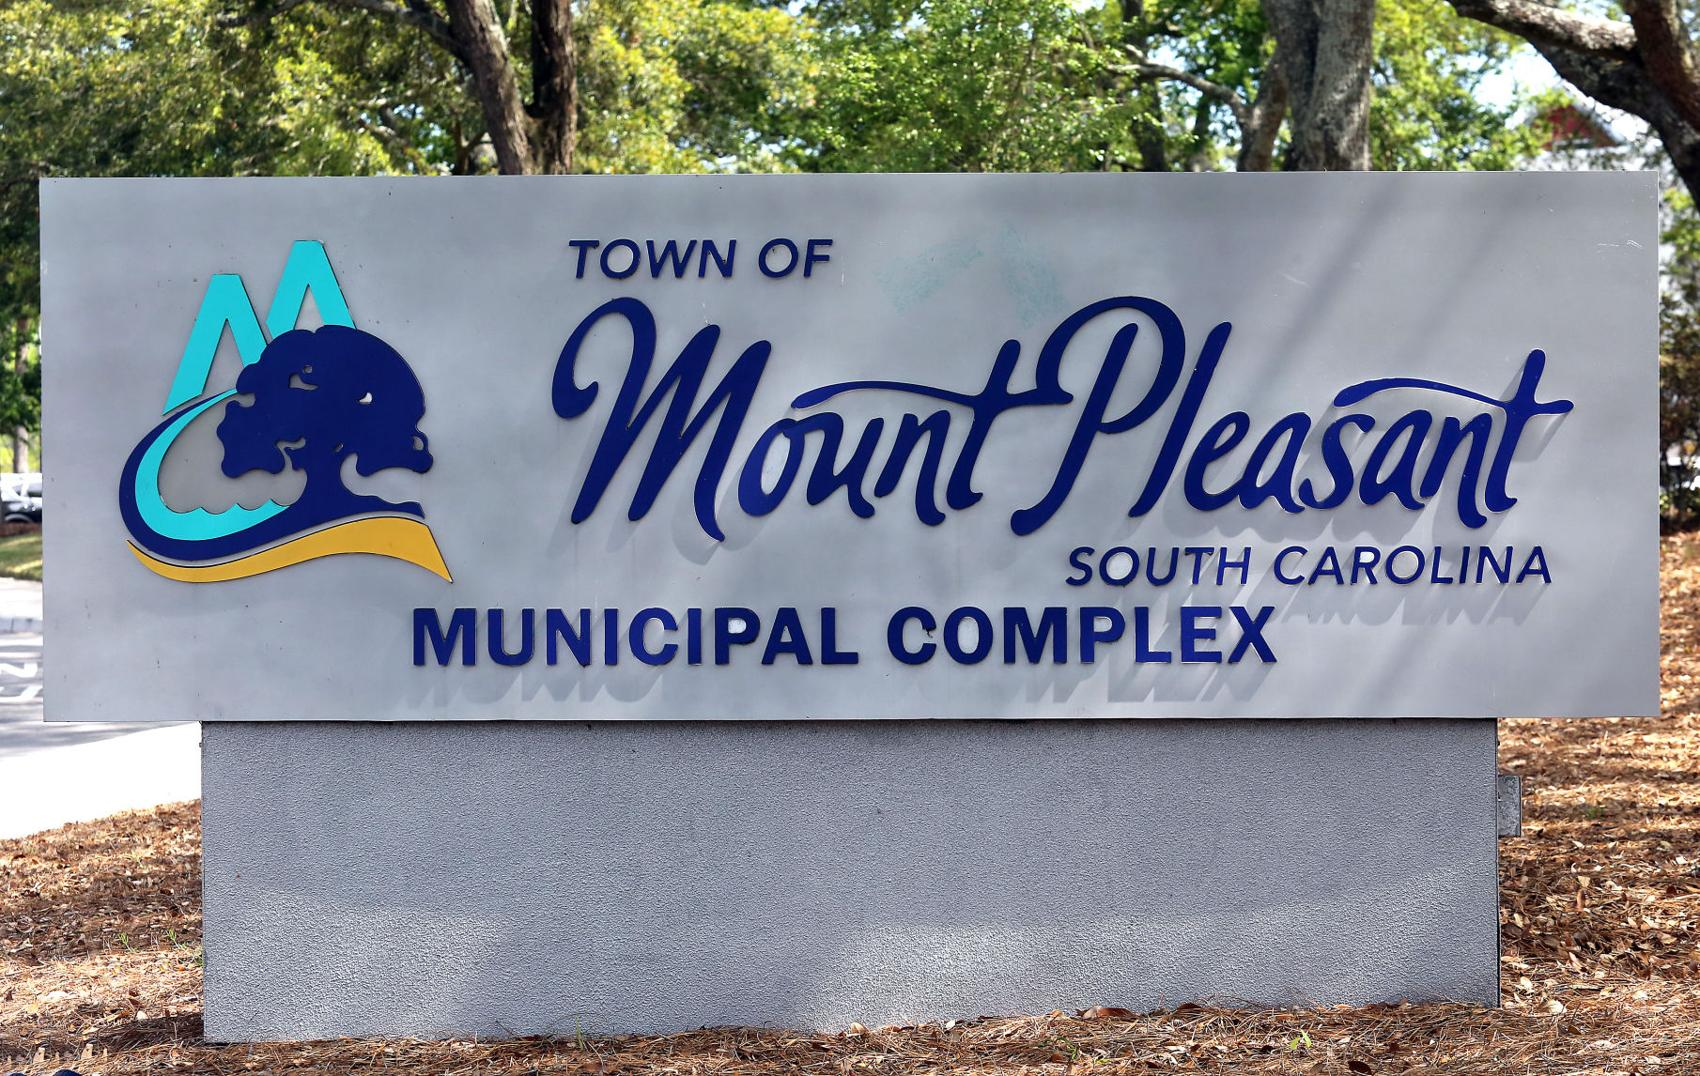 POST AND COURIER – Mount Pleasant goes to court to prevent release of police report involving councilman